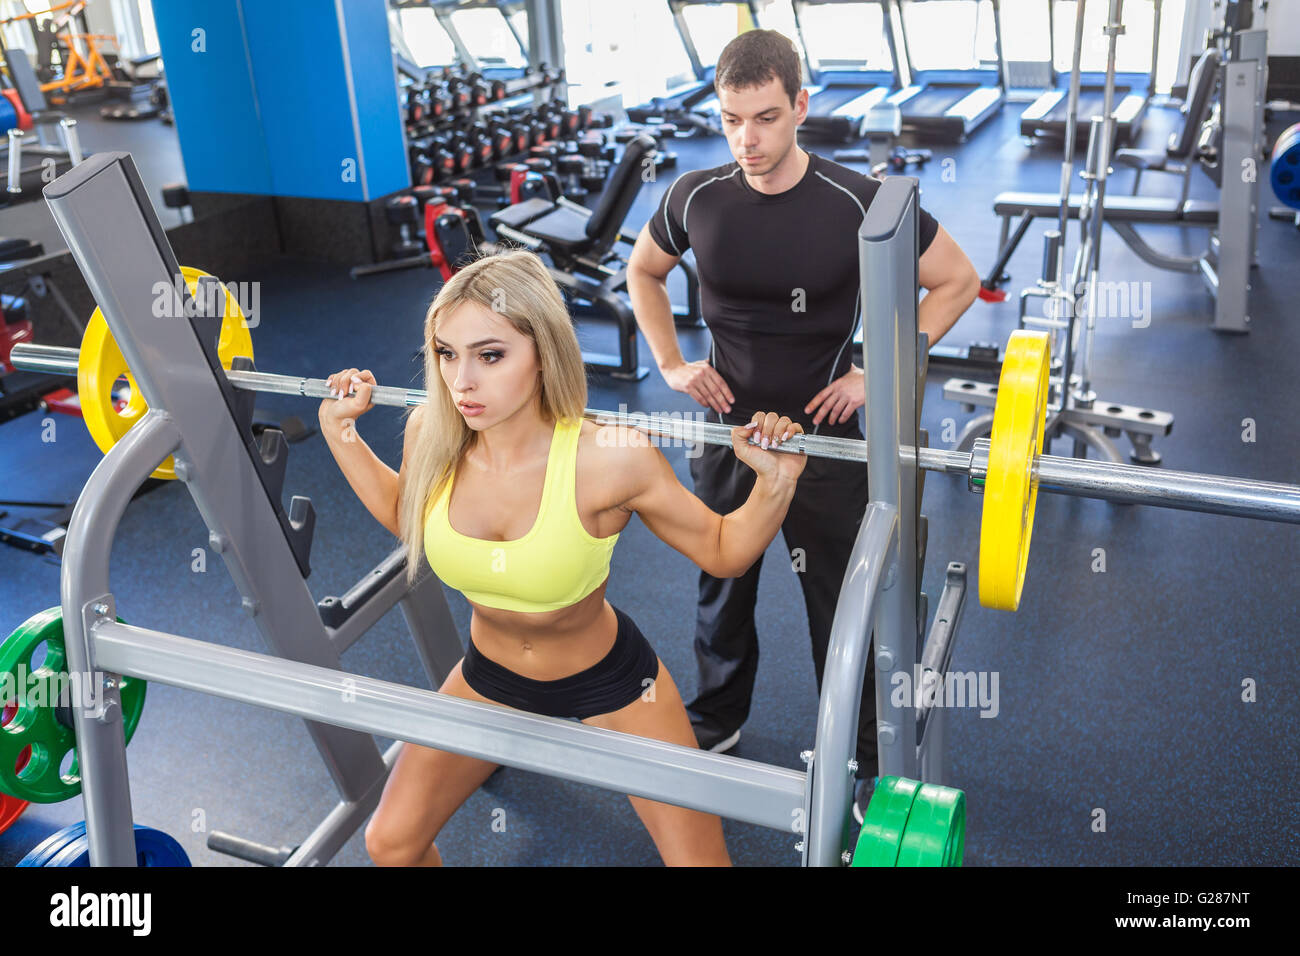 fitness woman and personal trainer in gym - Stock Image